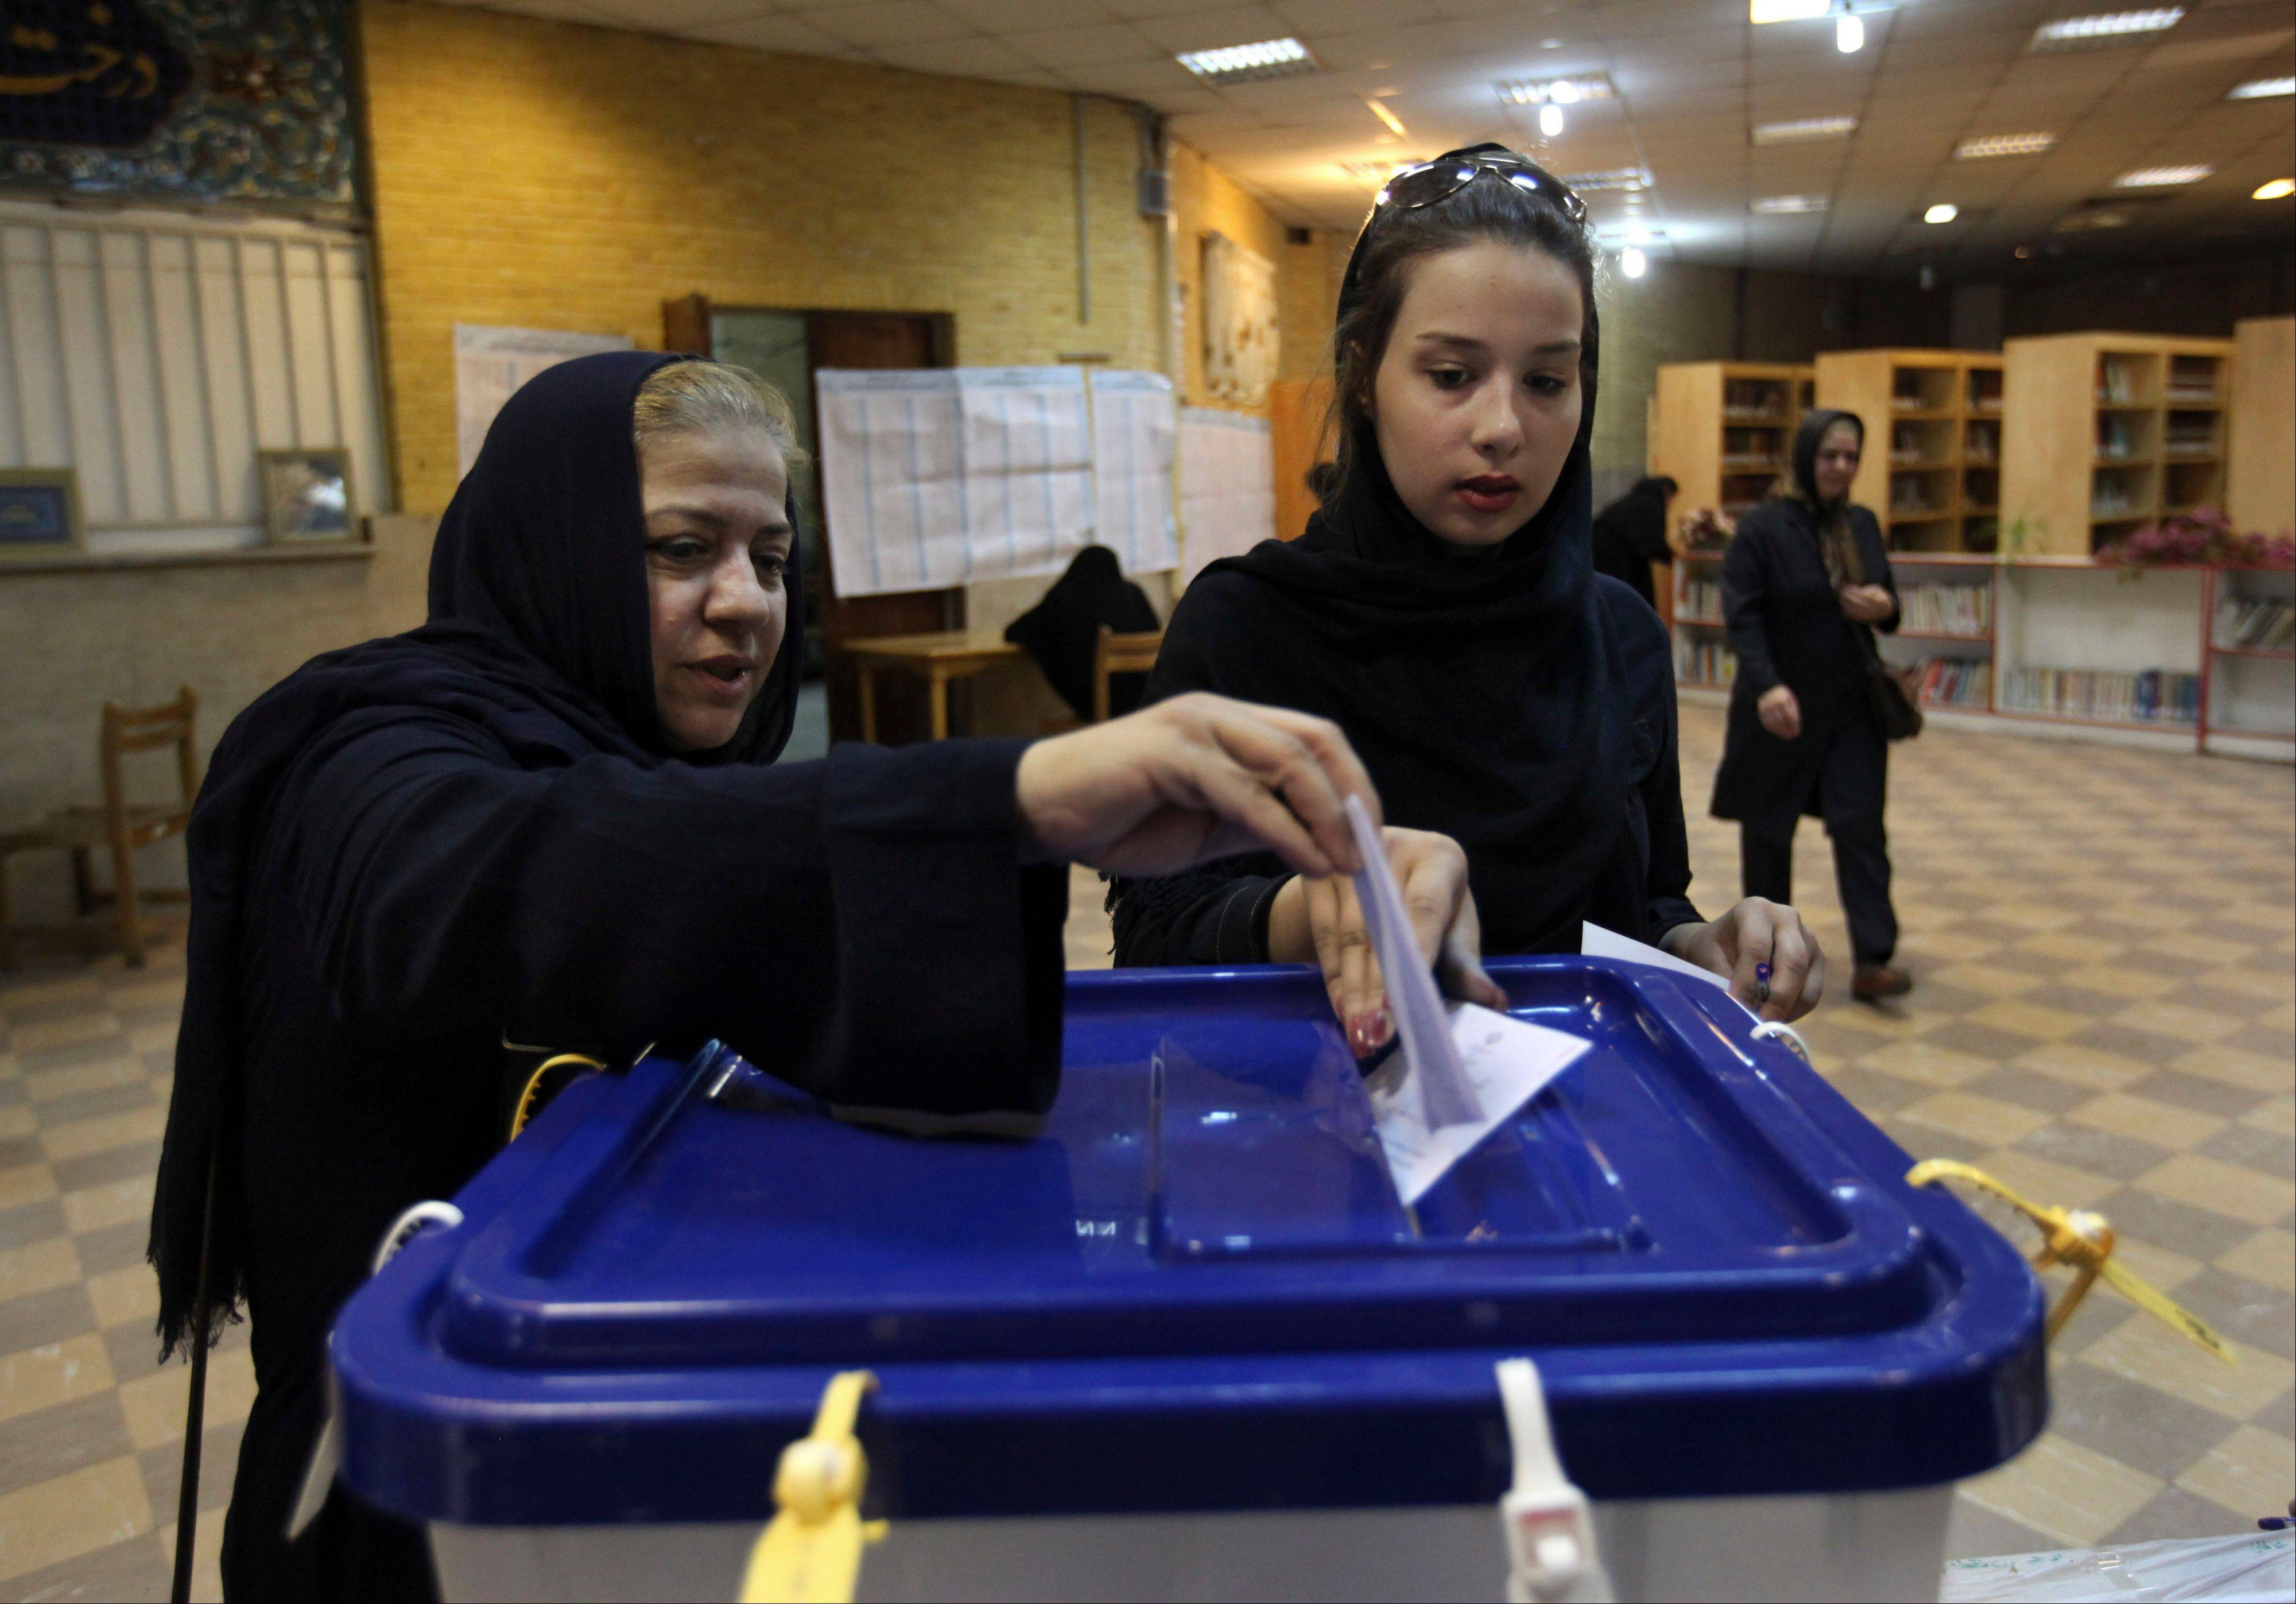 Two Iranian women cast their ballots during the presidential and municipal councils elections in a polling station in Tehran, Iran, Friday.